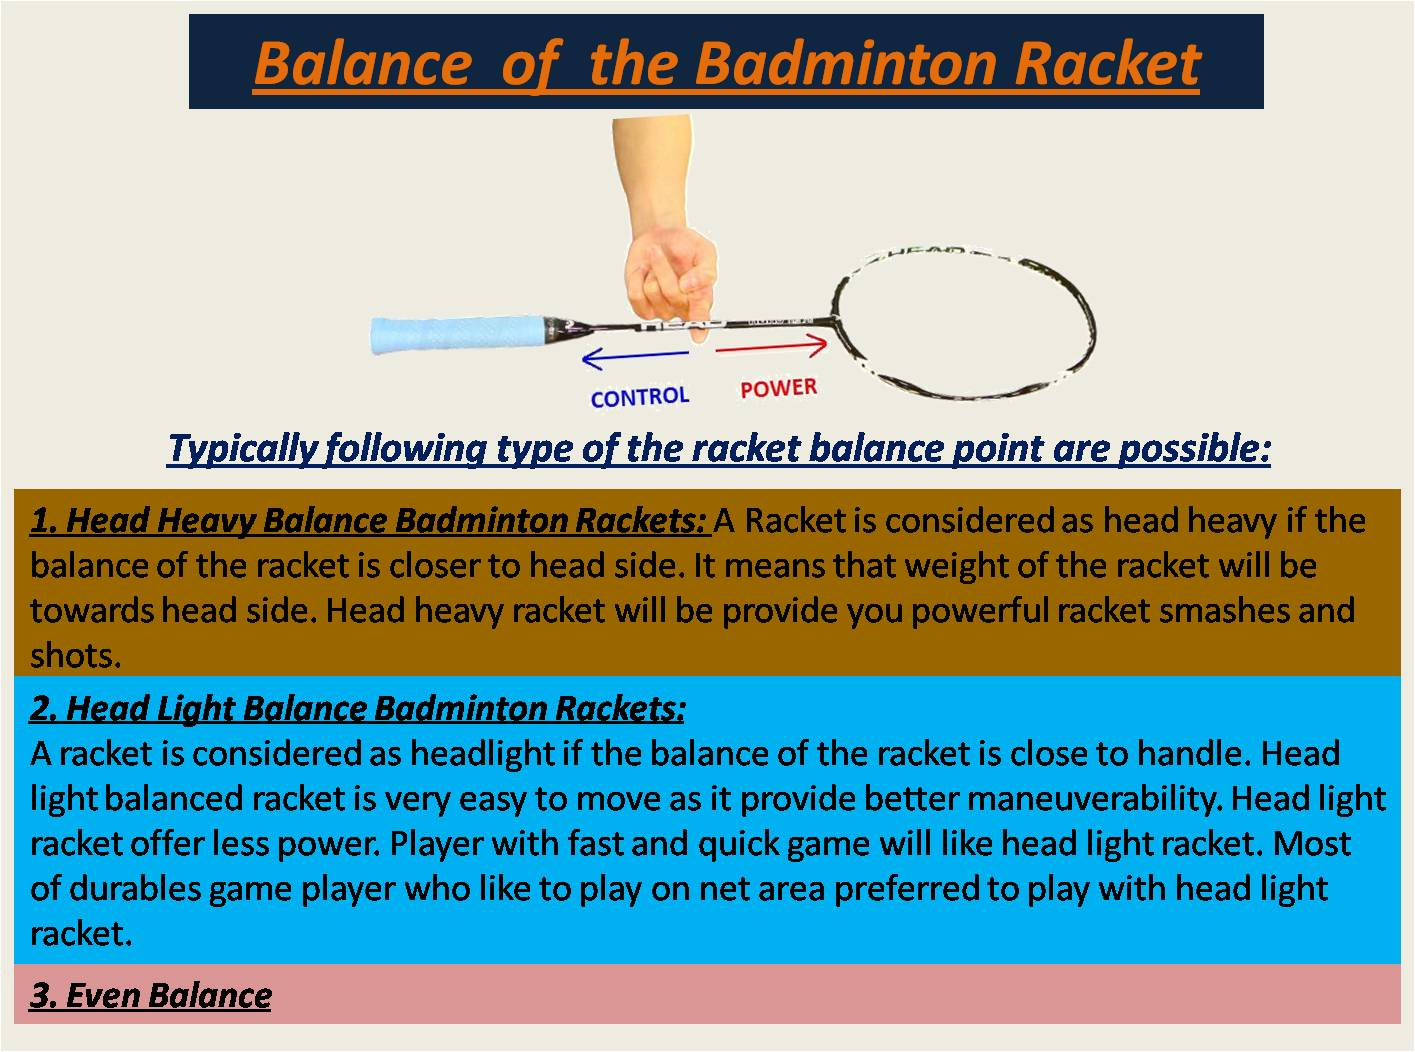 Balance of the Badminton Racket